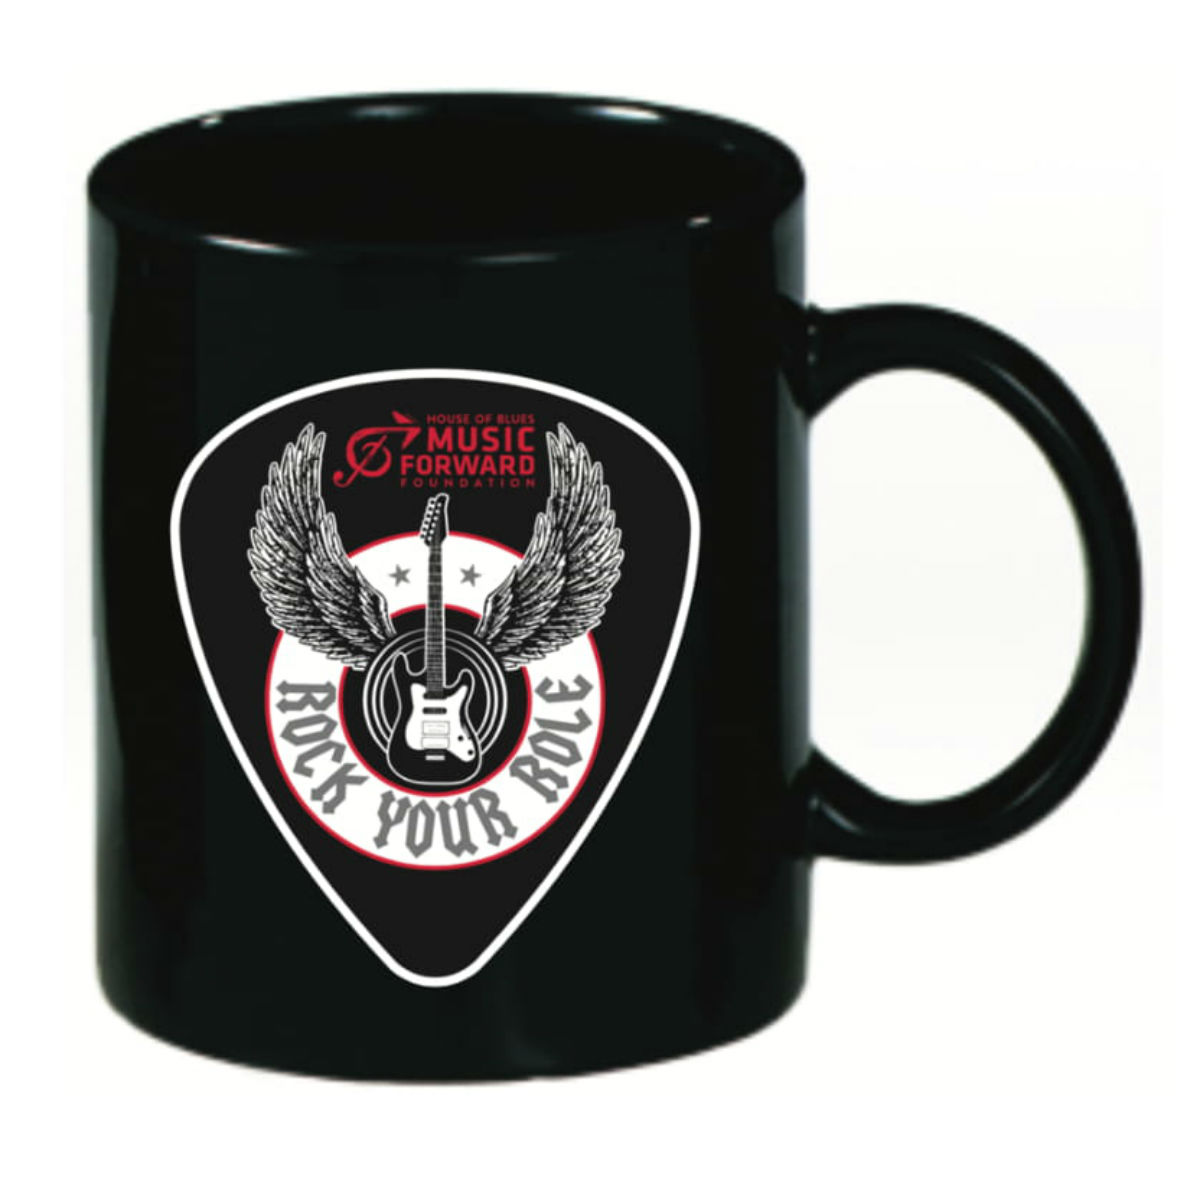 Rock your Roll MF Mug